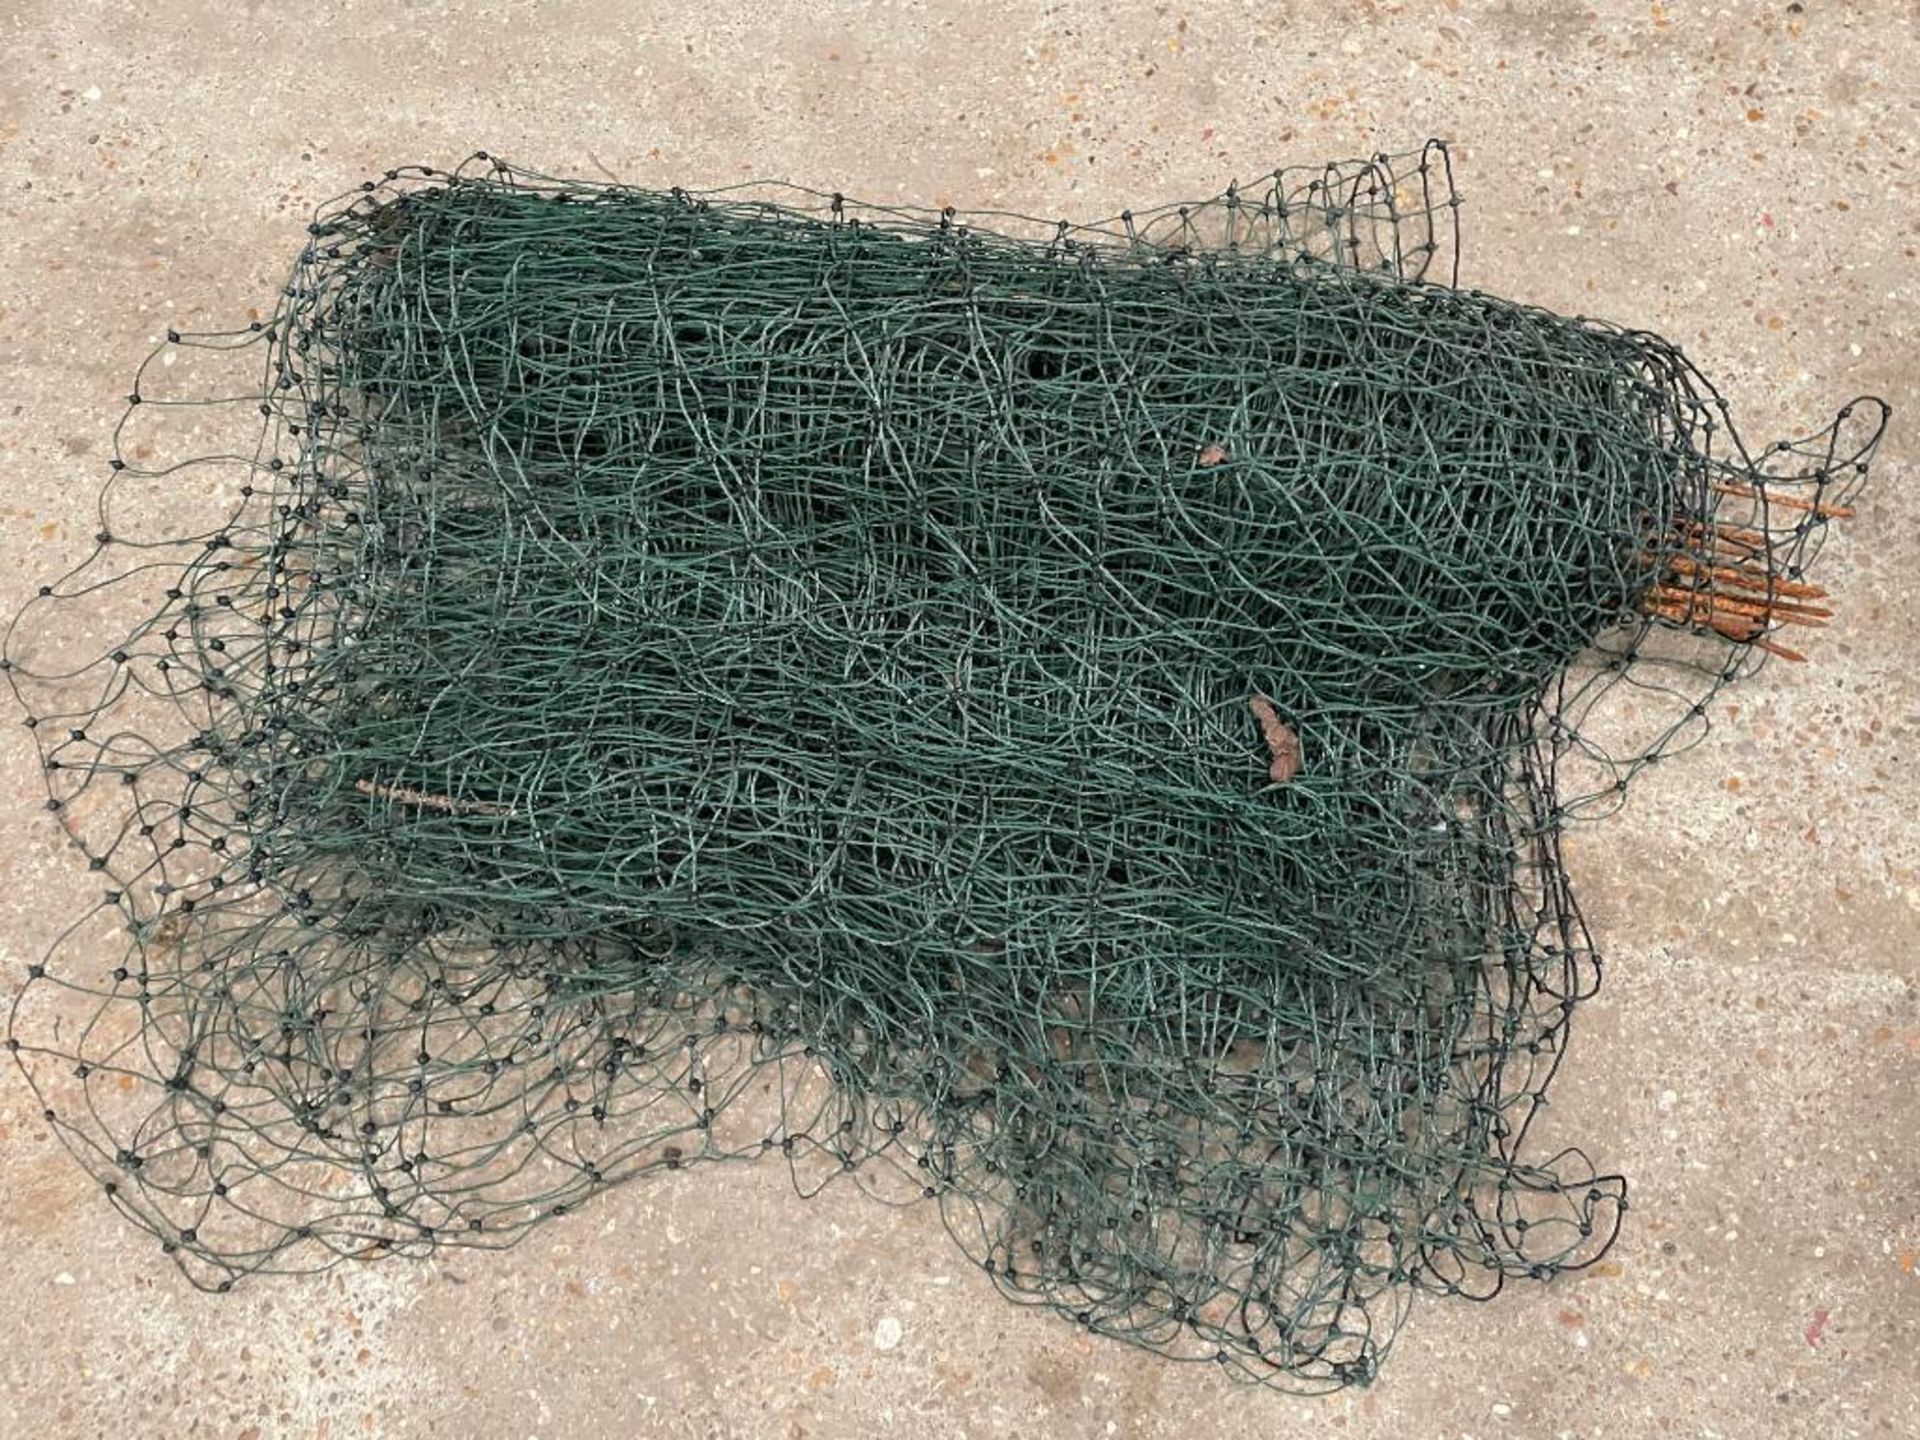 Quantity netting and poles - Image 2 of 2